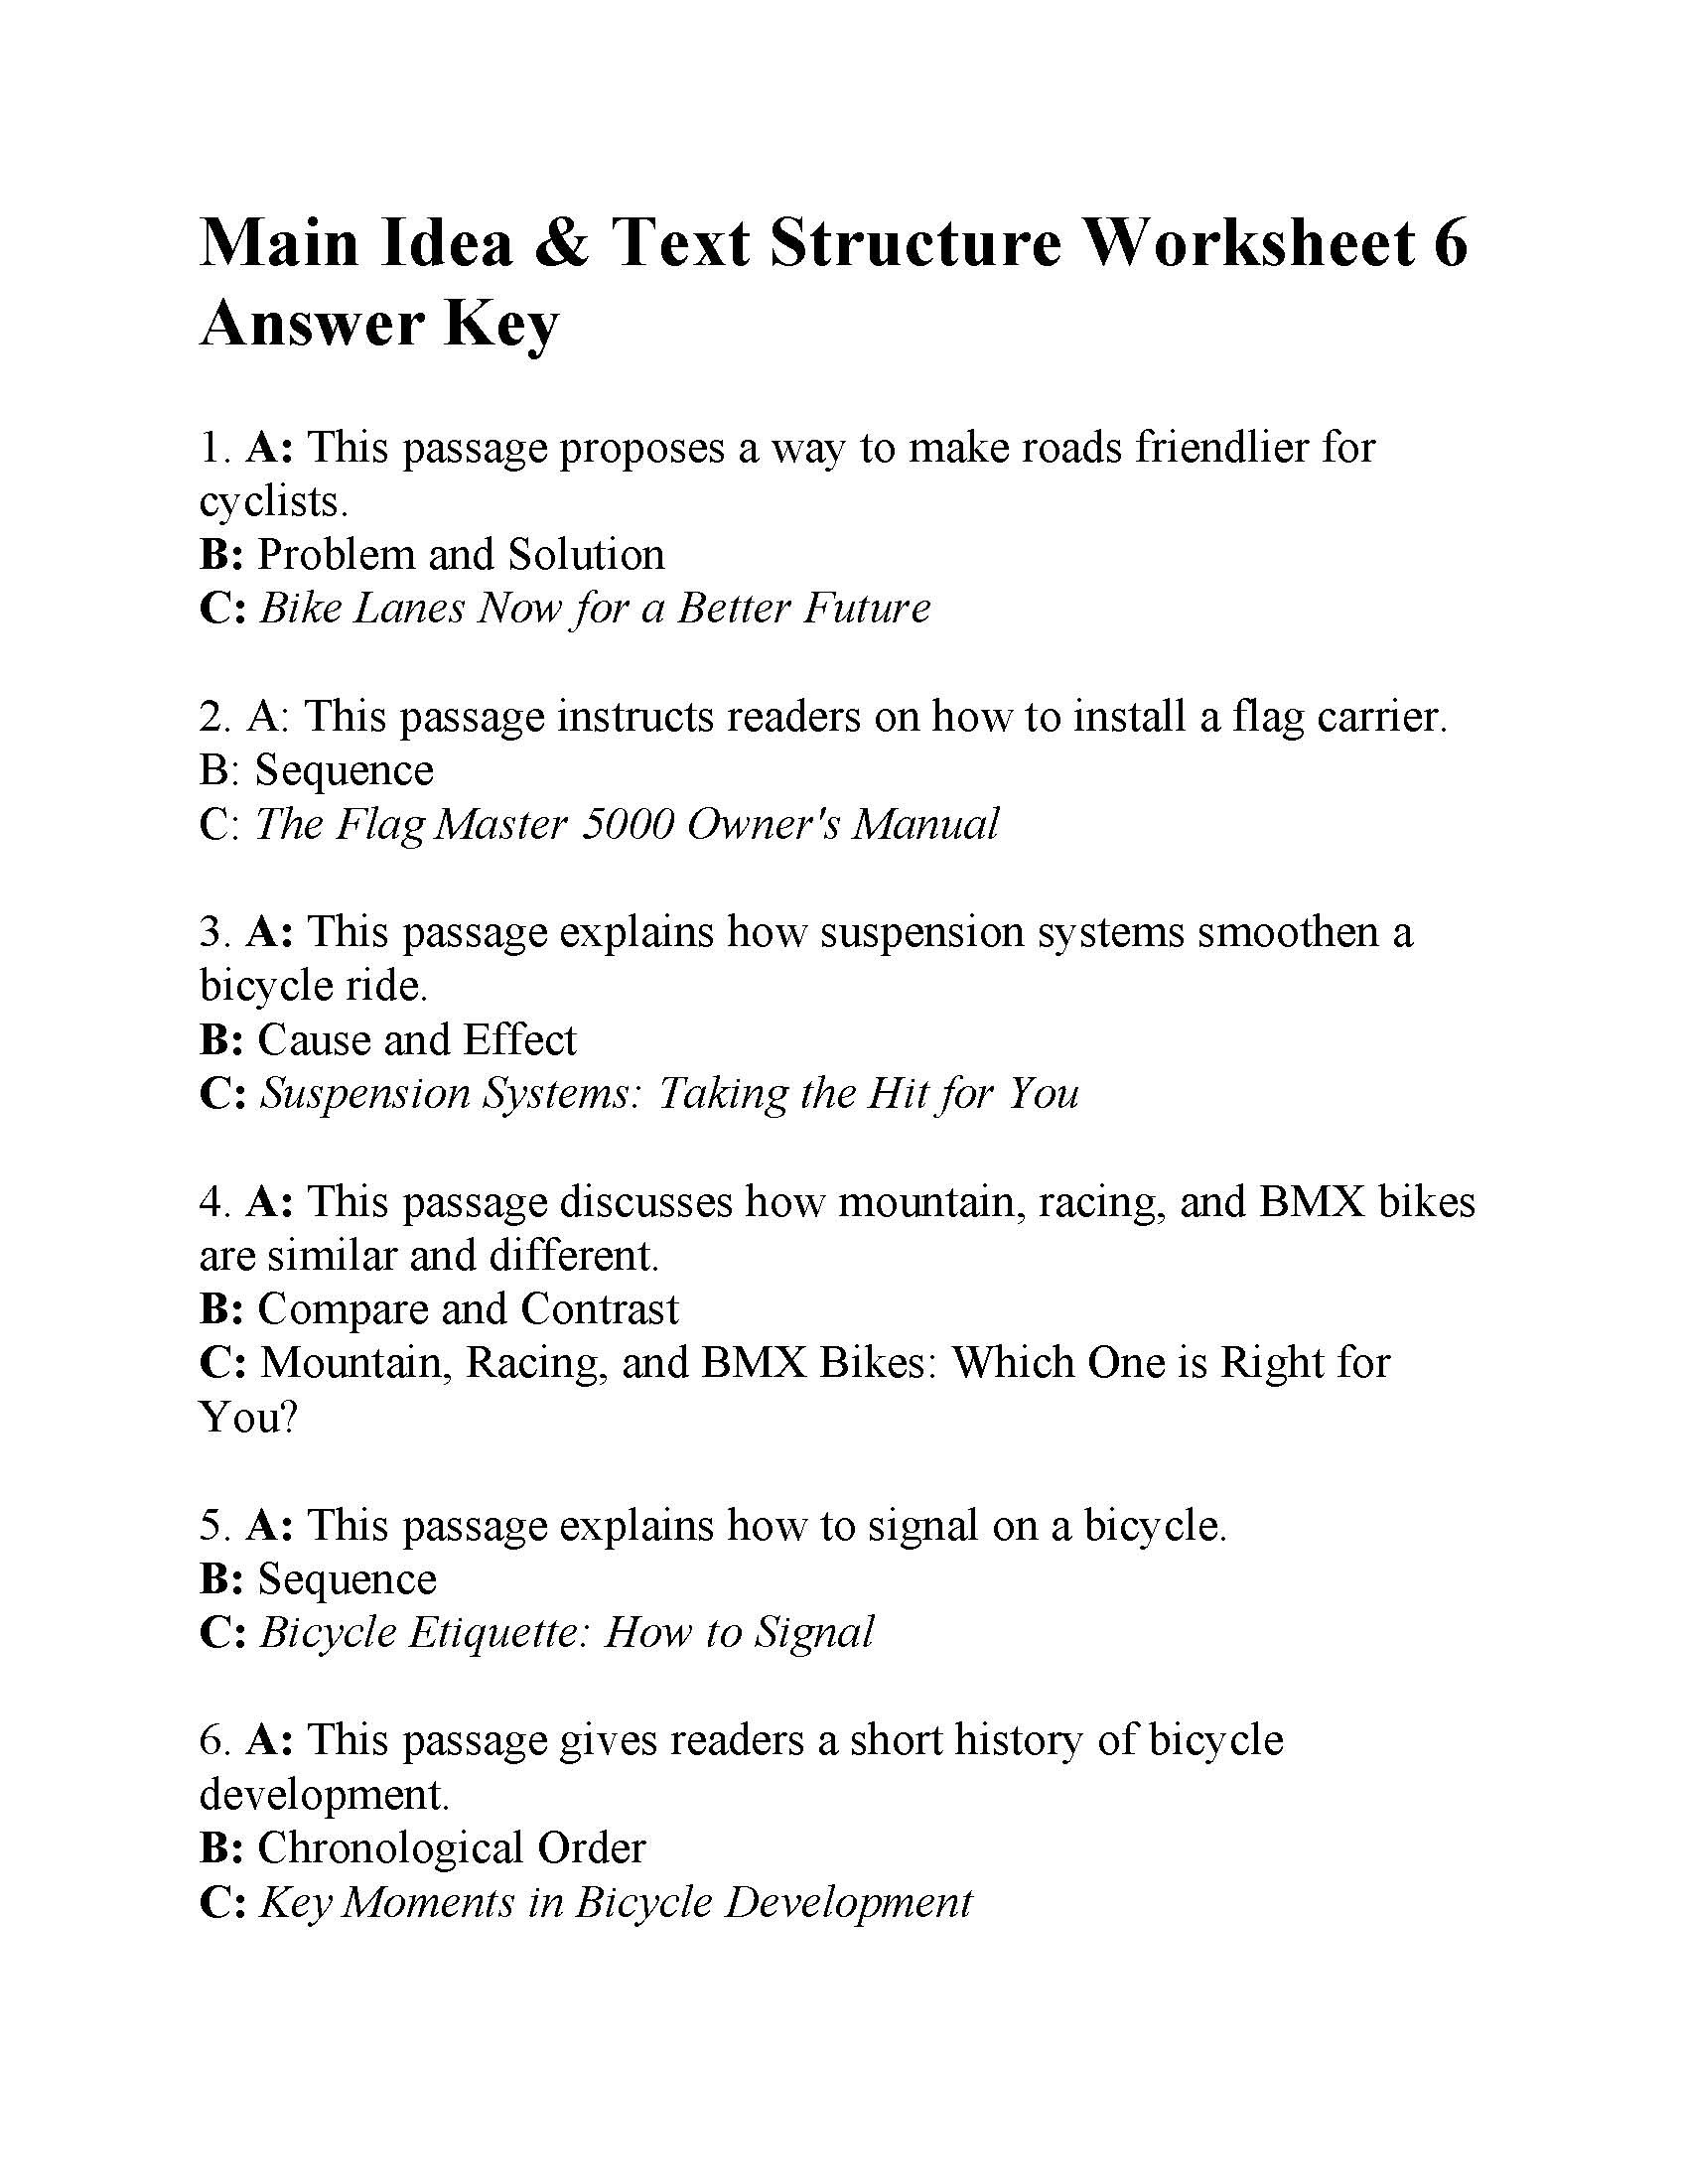 Text Structure Worksheets 3rd Grade Main Idea and Text Structure Worksheet Answers Ereading